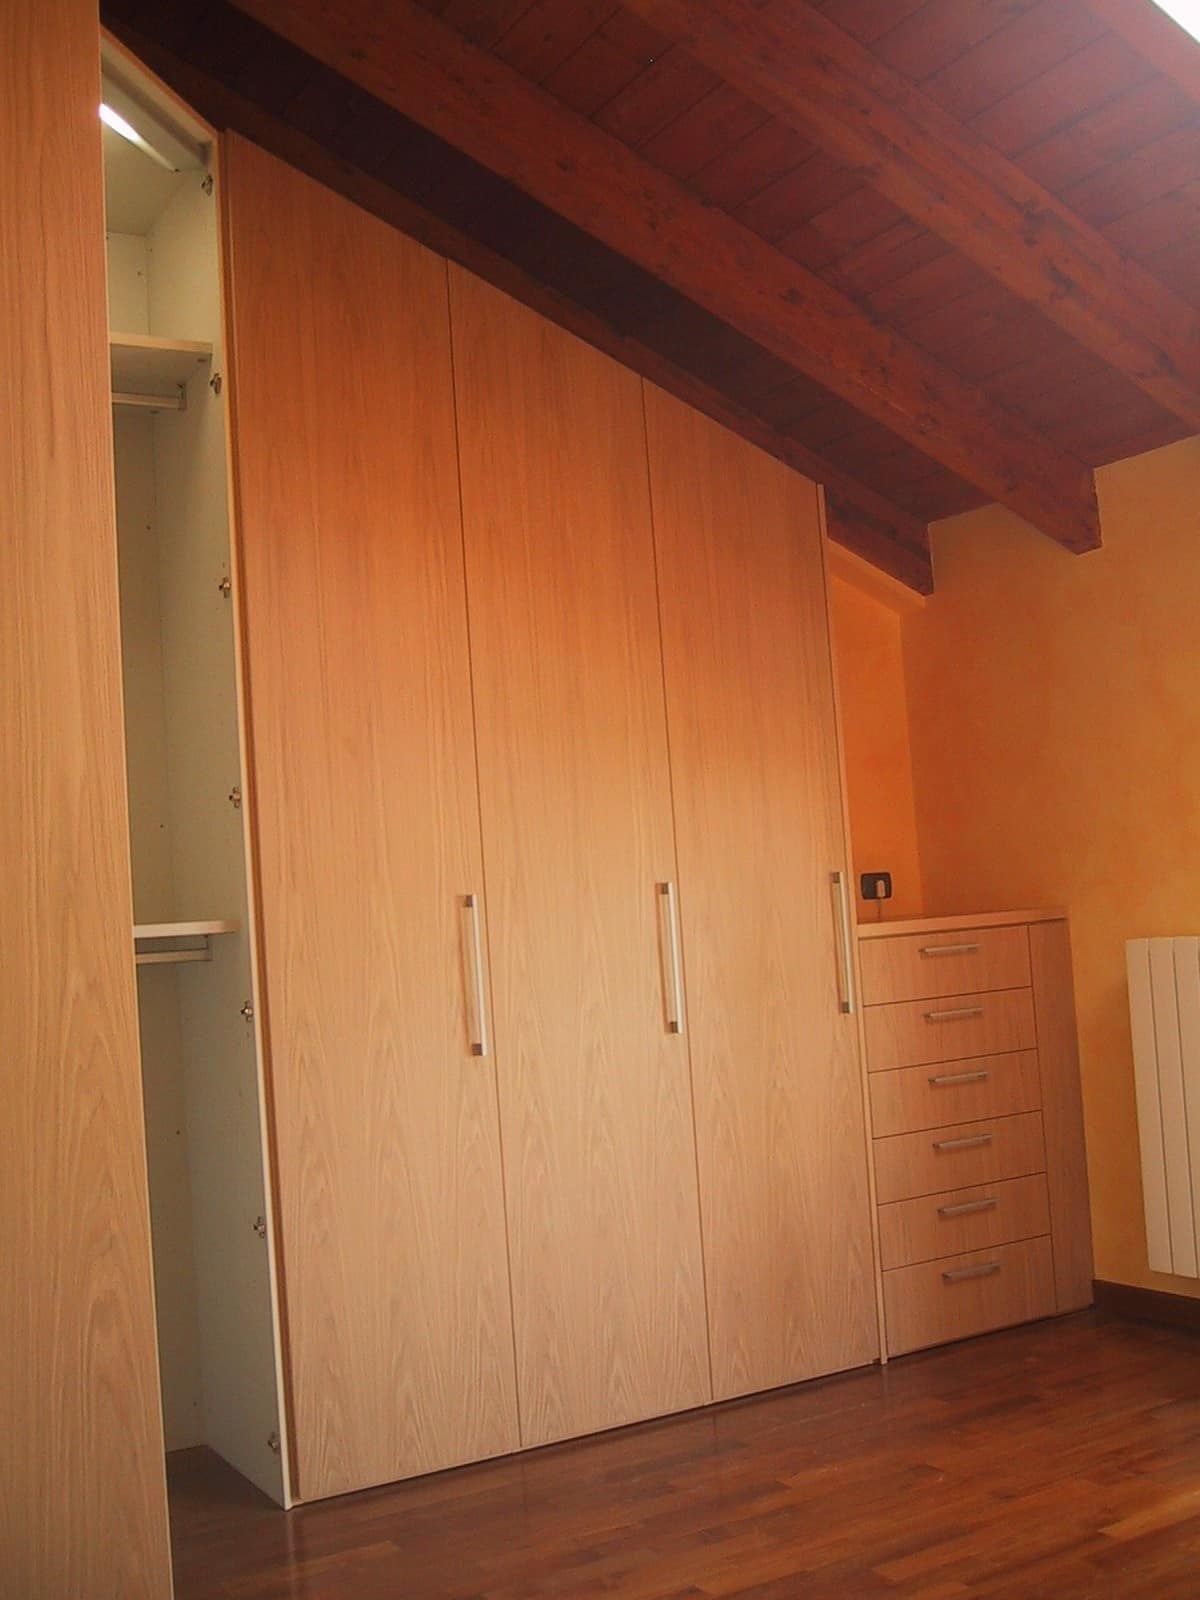 Corner shaped wardrobe for under-roof room, Closet for the attic, angular, tailor made